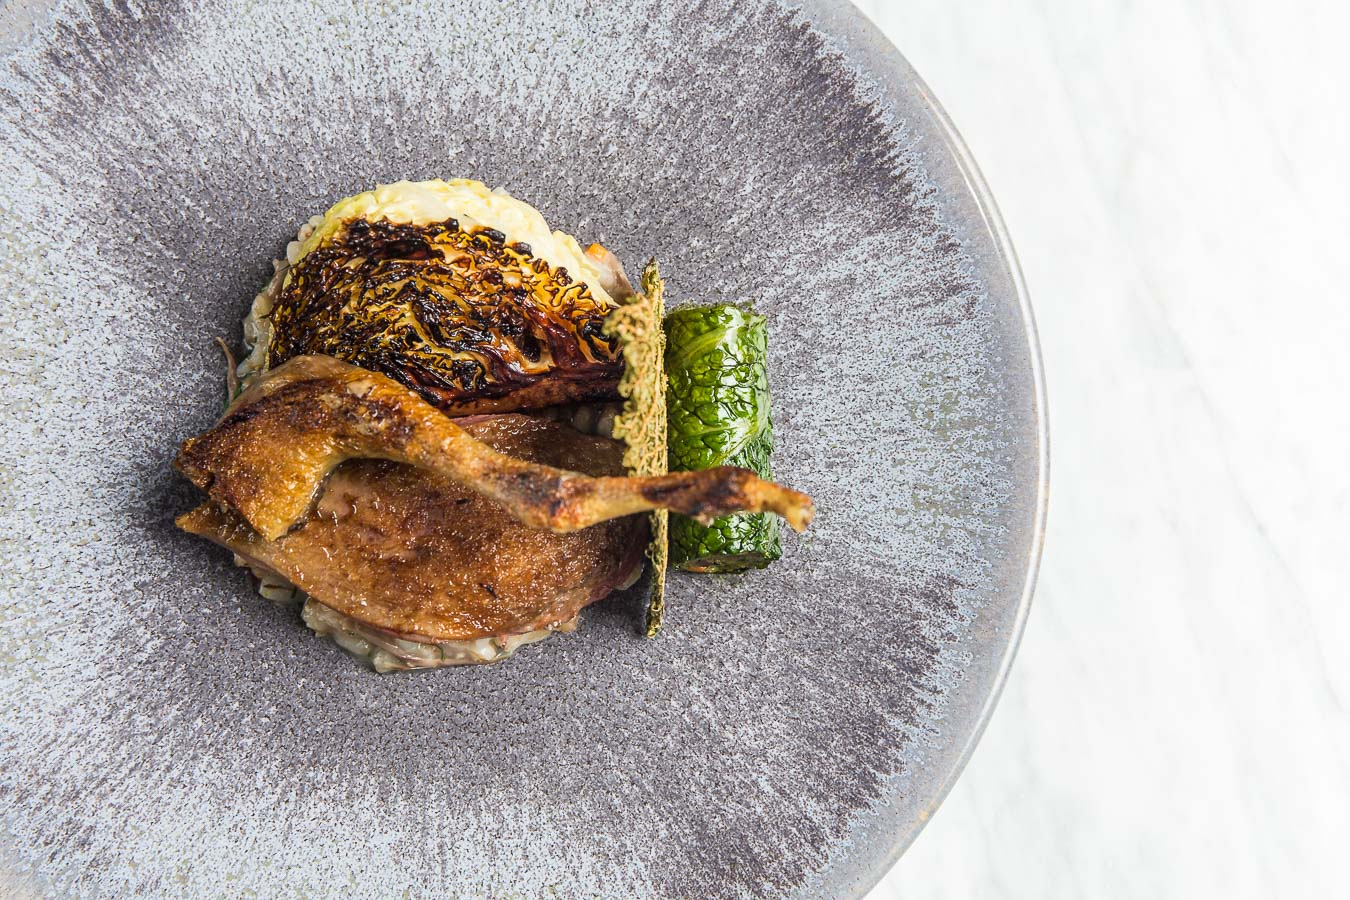 Chicken leg carefully plated in a fine dining style, with a leaf wrapped confit leg meat on a textured grey plate